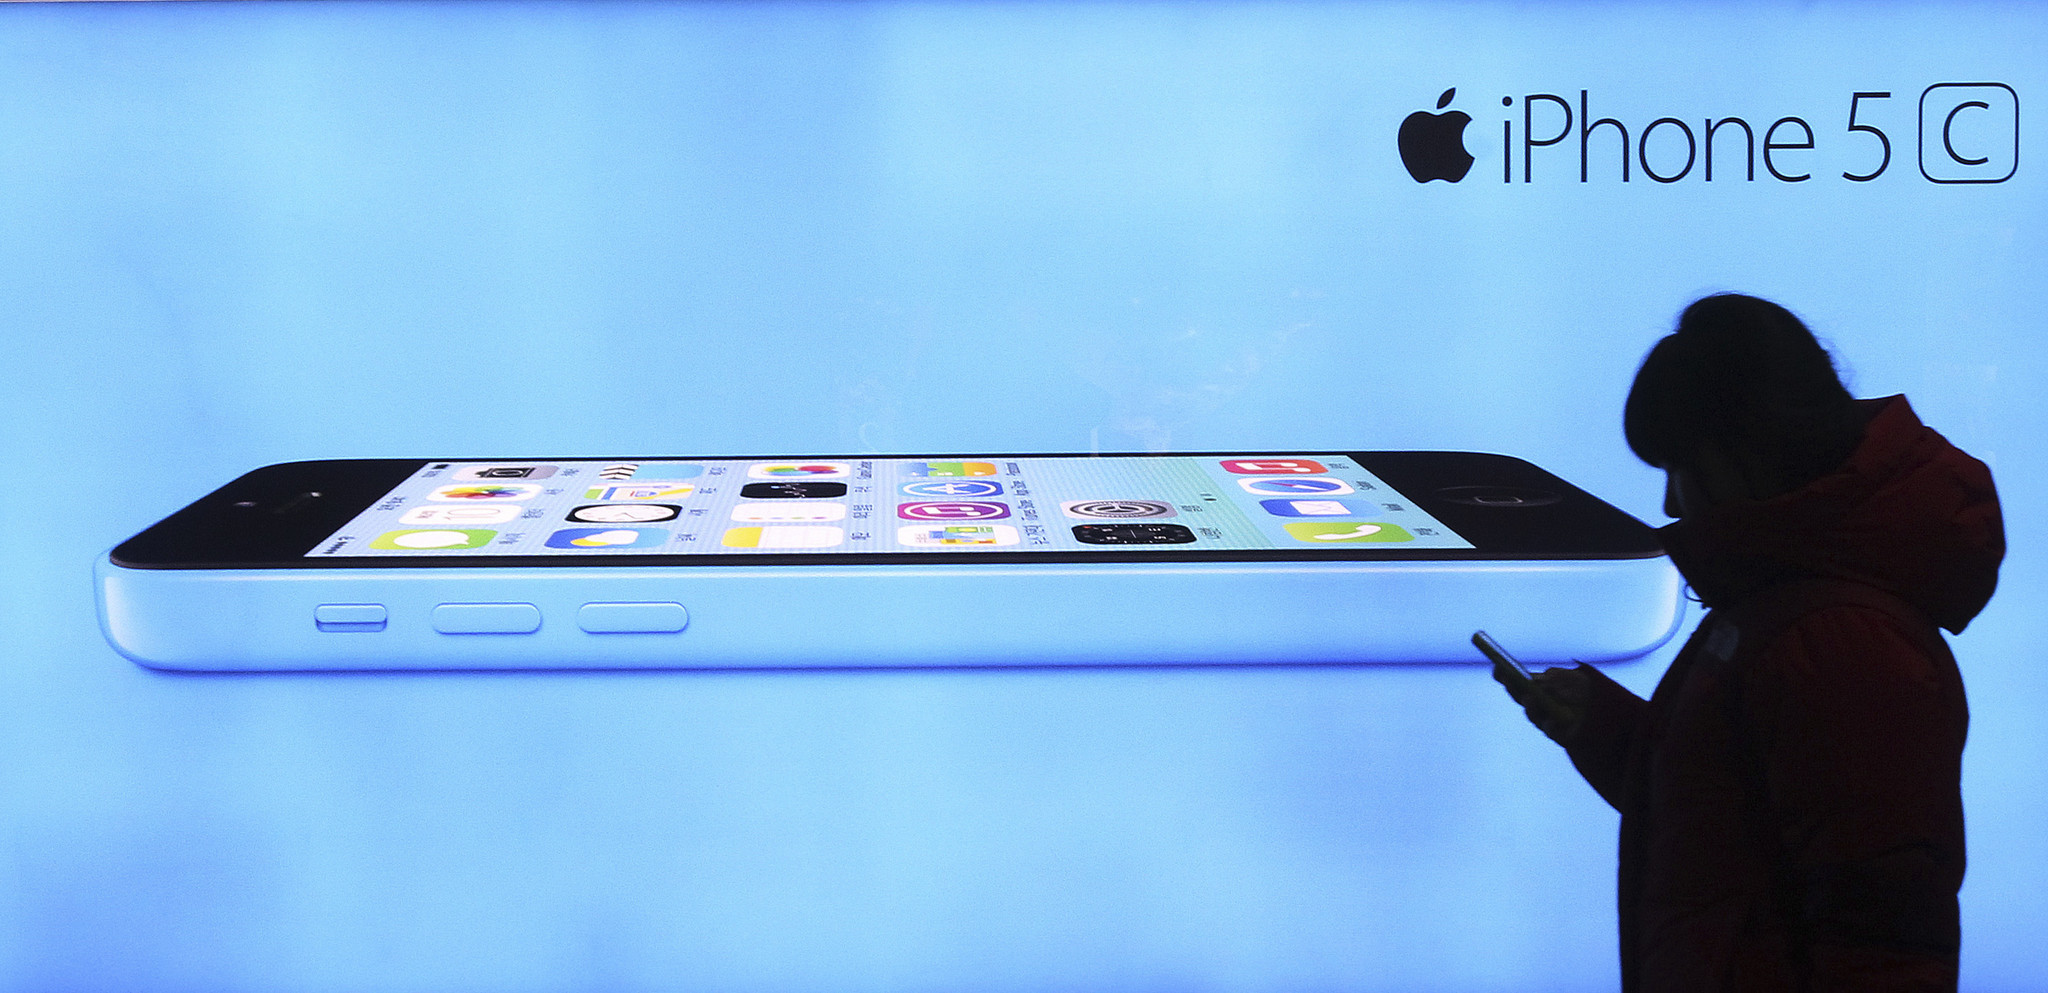 Best Buy selling iPhone 5c for